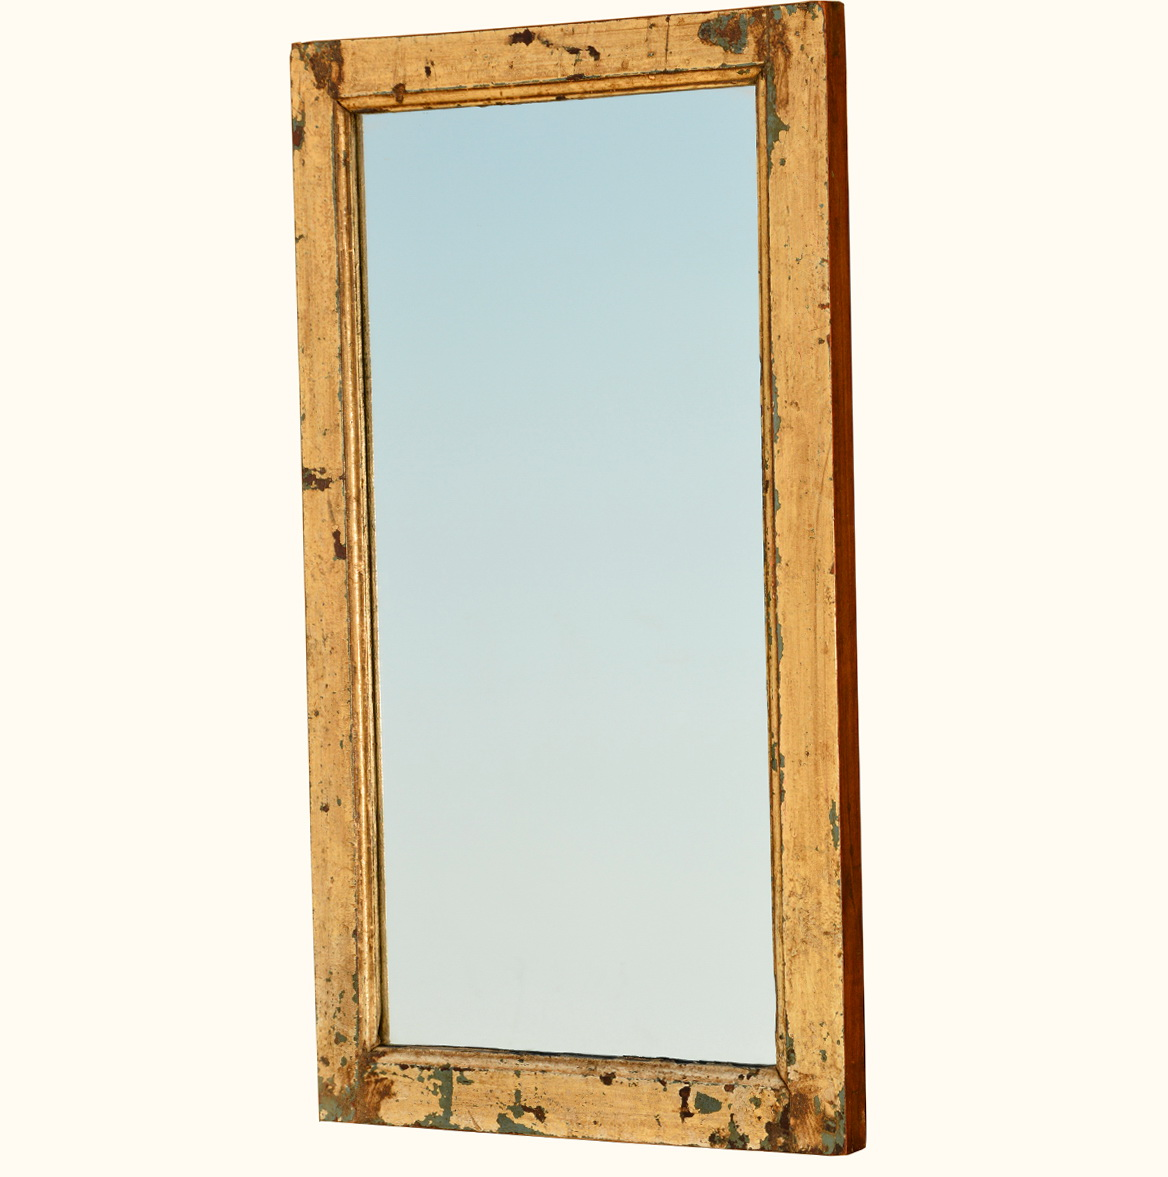 Rustic Wood Framed Mirrors